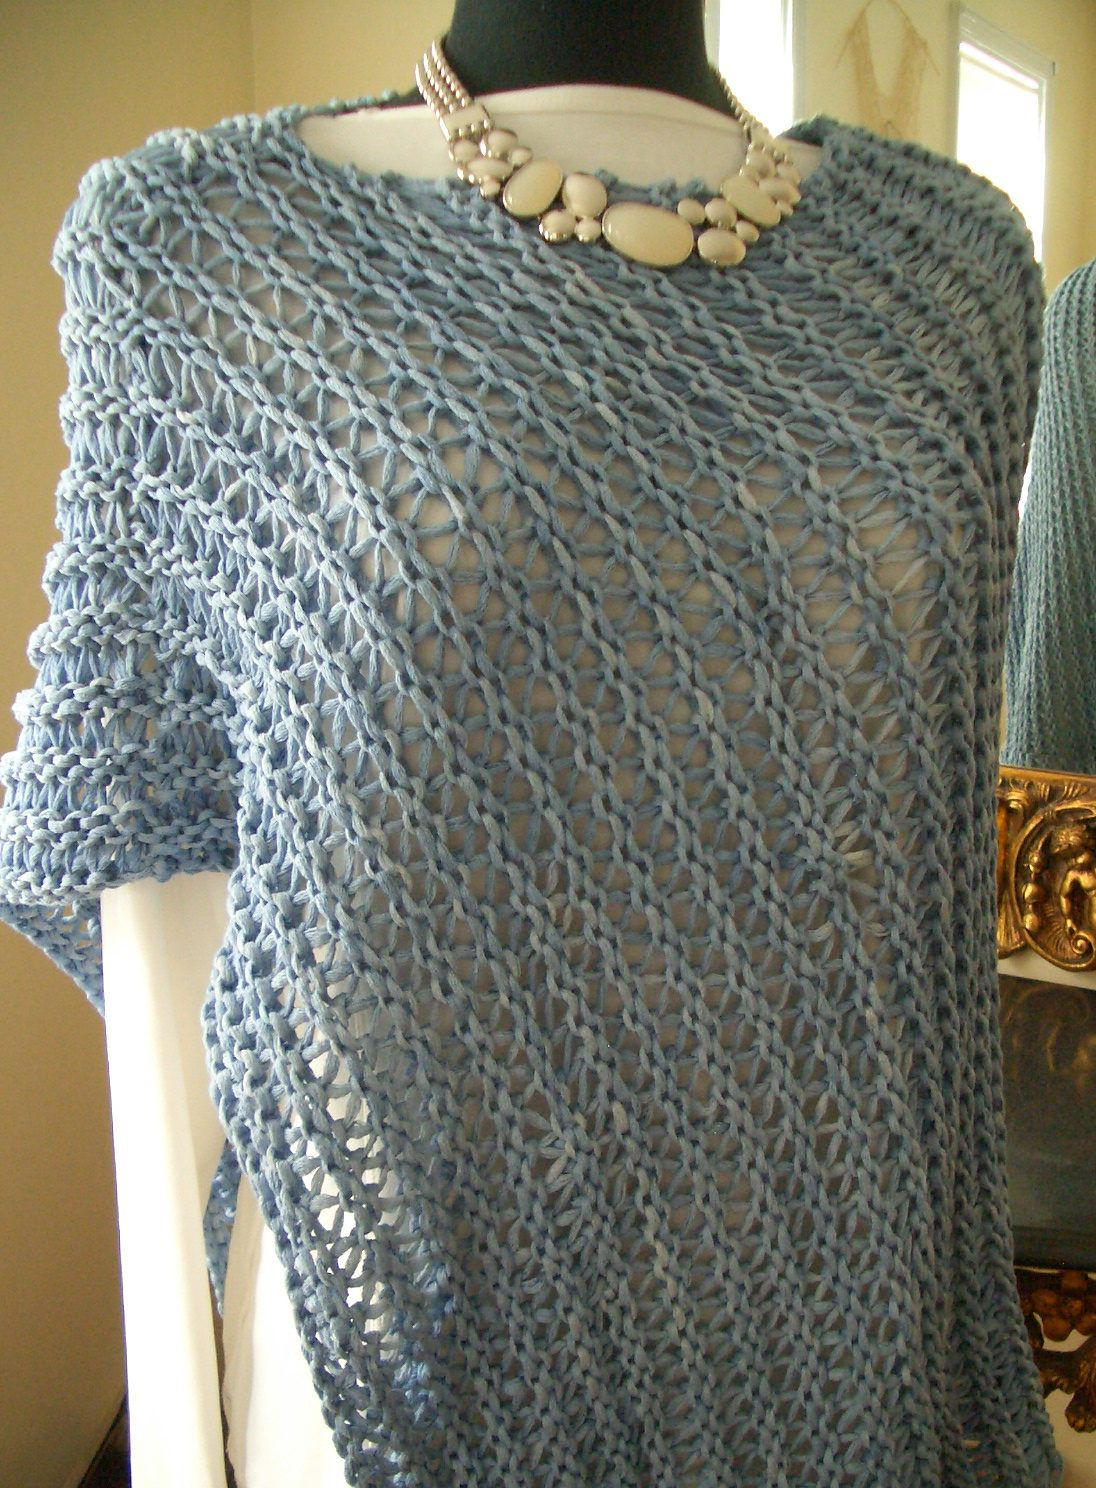 Knitting Stitches Wrap 3 : Free Knitting Pattern for Easy 4-Row Repeat Ridged Wrap Poncho -Easy poncho f...